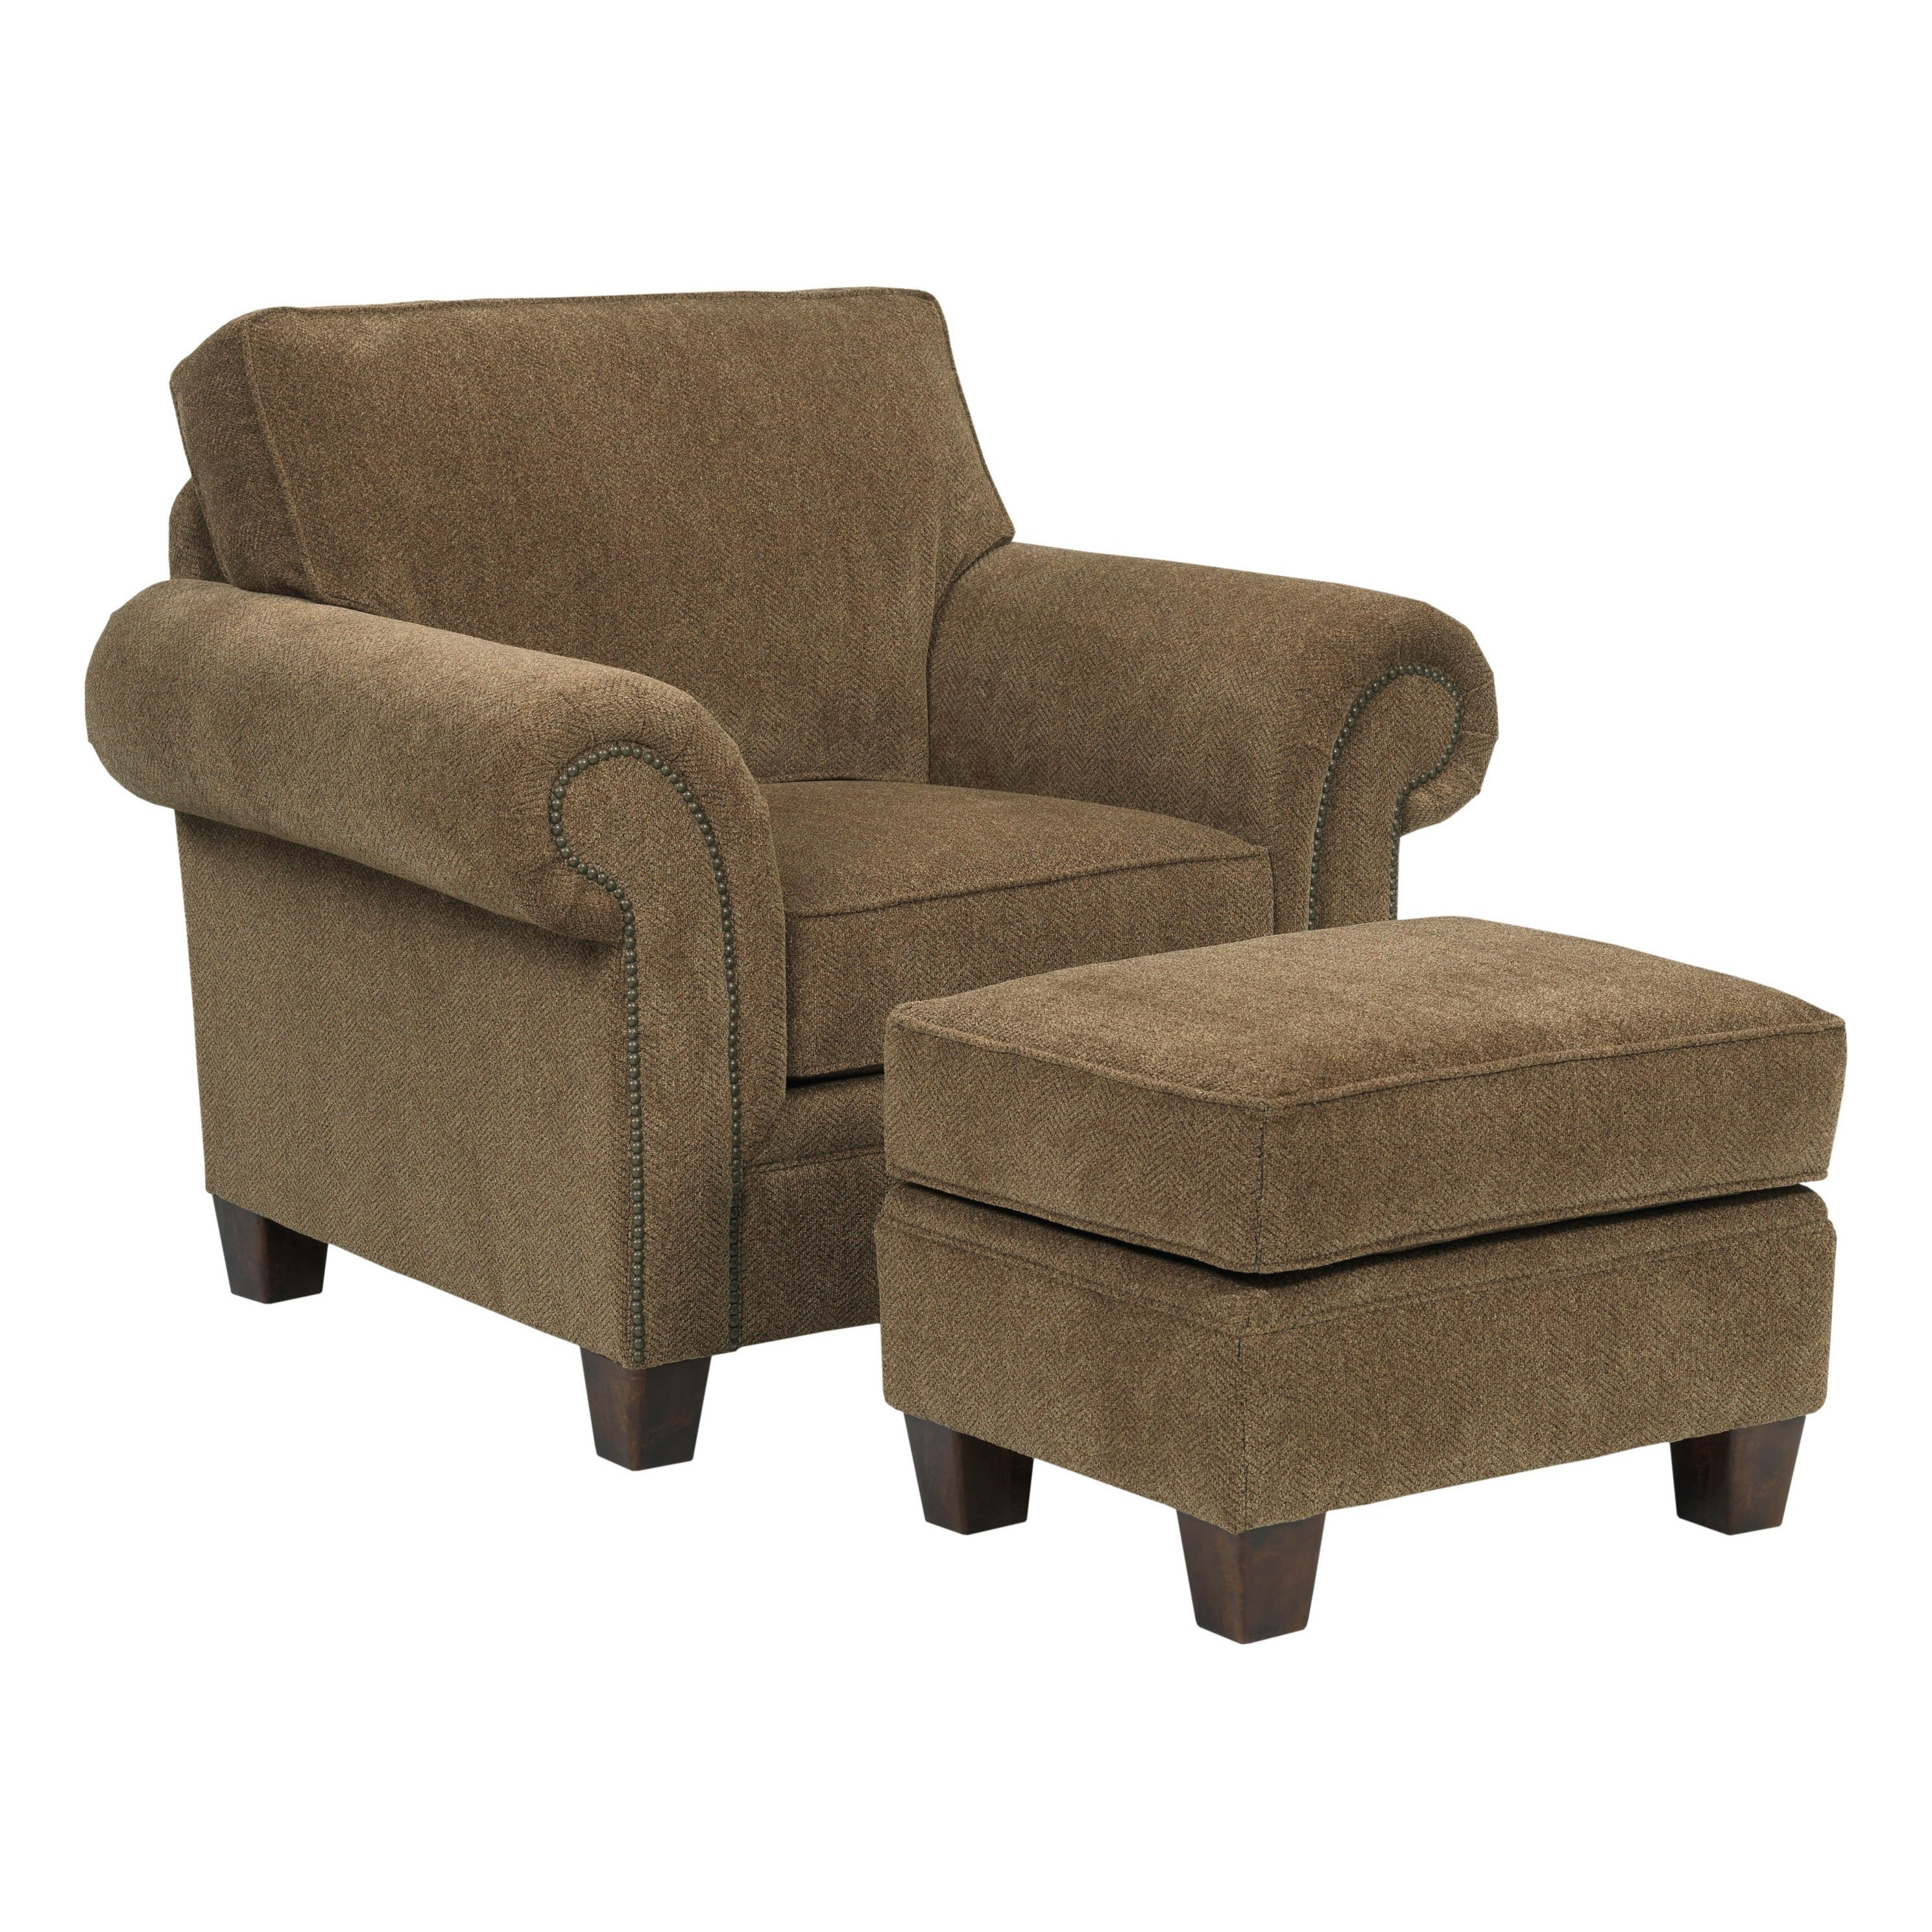 Magnificent Broyhill Travis Ottoman Dailytribune Chair Design For Home Dailytribuneorg